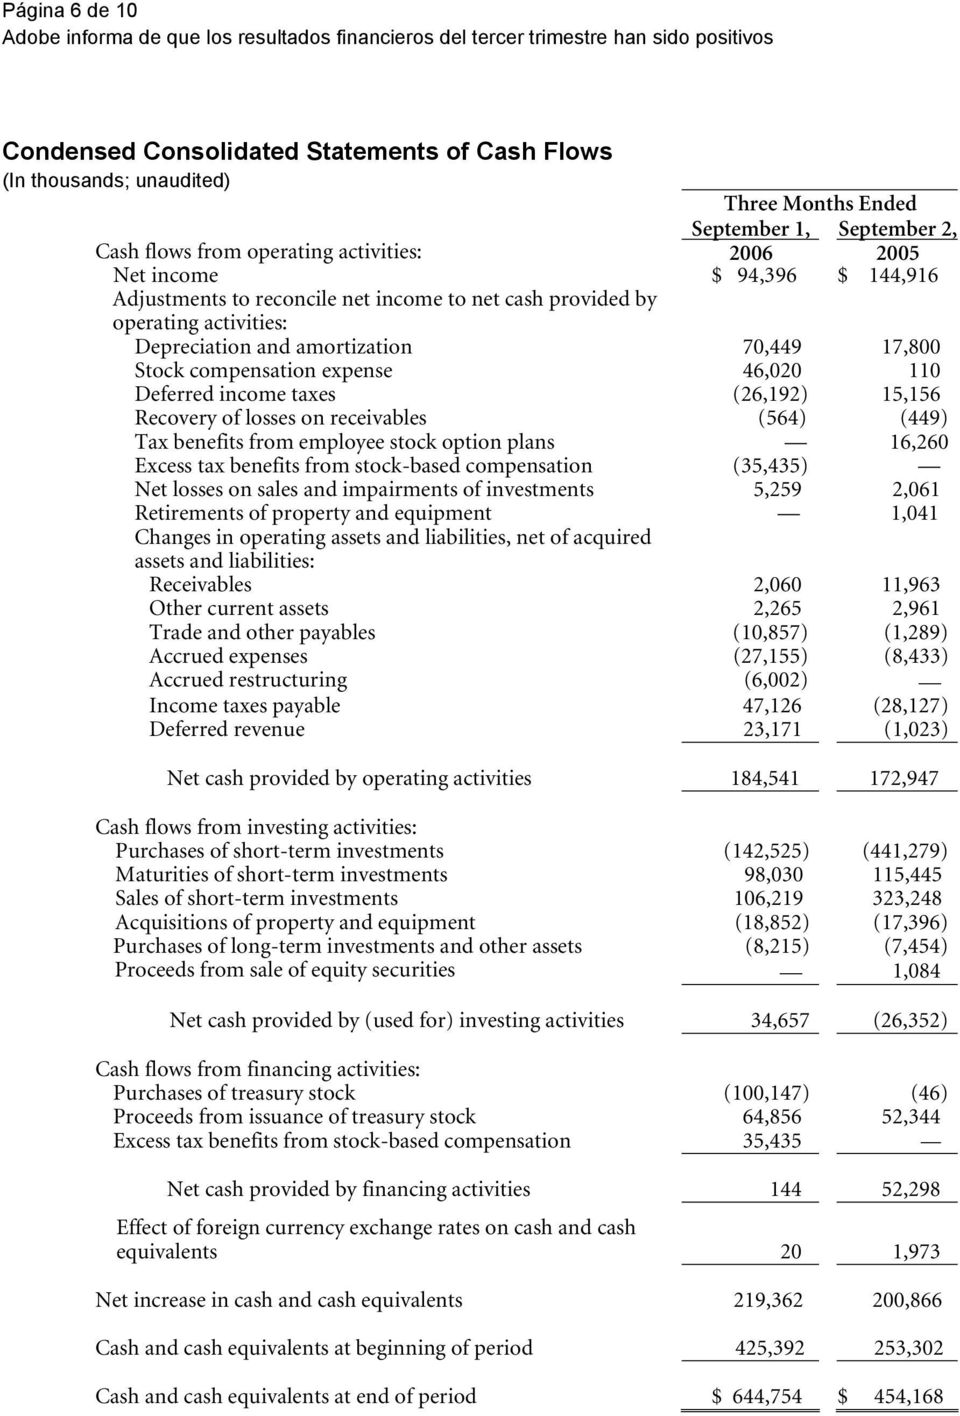 taxes (26,192) 15,156 Recovery of losses on receivables (564) (449) Tax benefits from employee stock option plans 16,260 Excess tax benefits from stock-based compensation (35,435) Net losses on sales